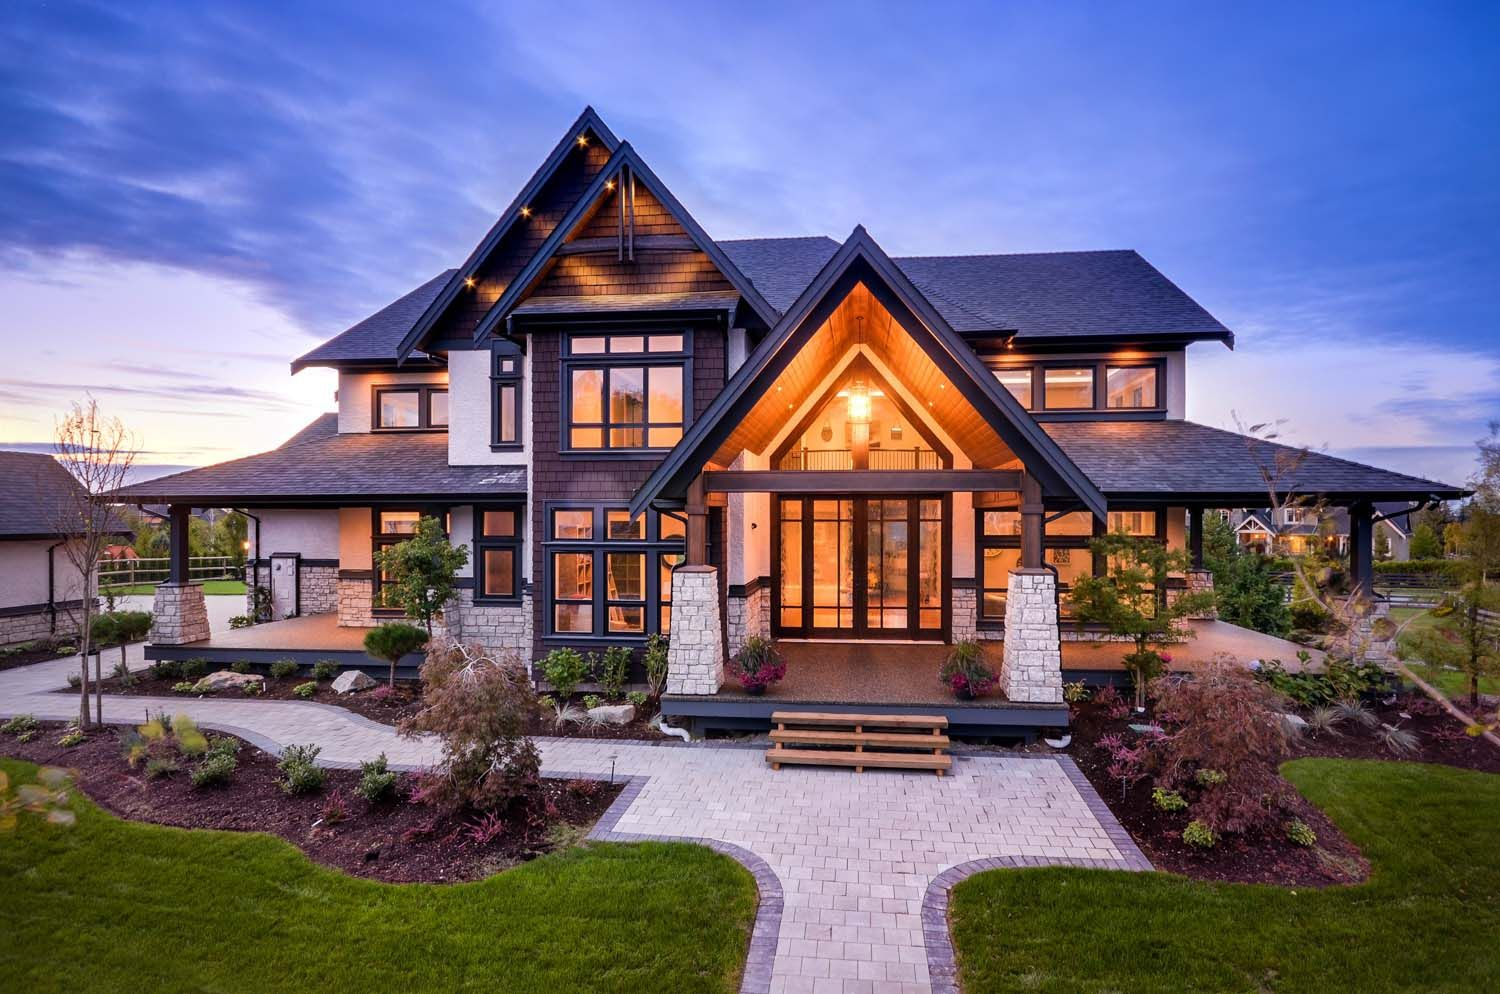 Transitional Style Home In British Columbia Showcases